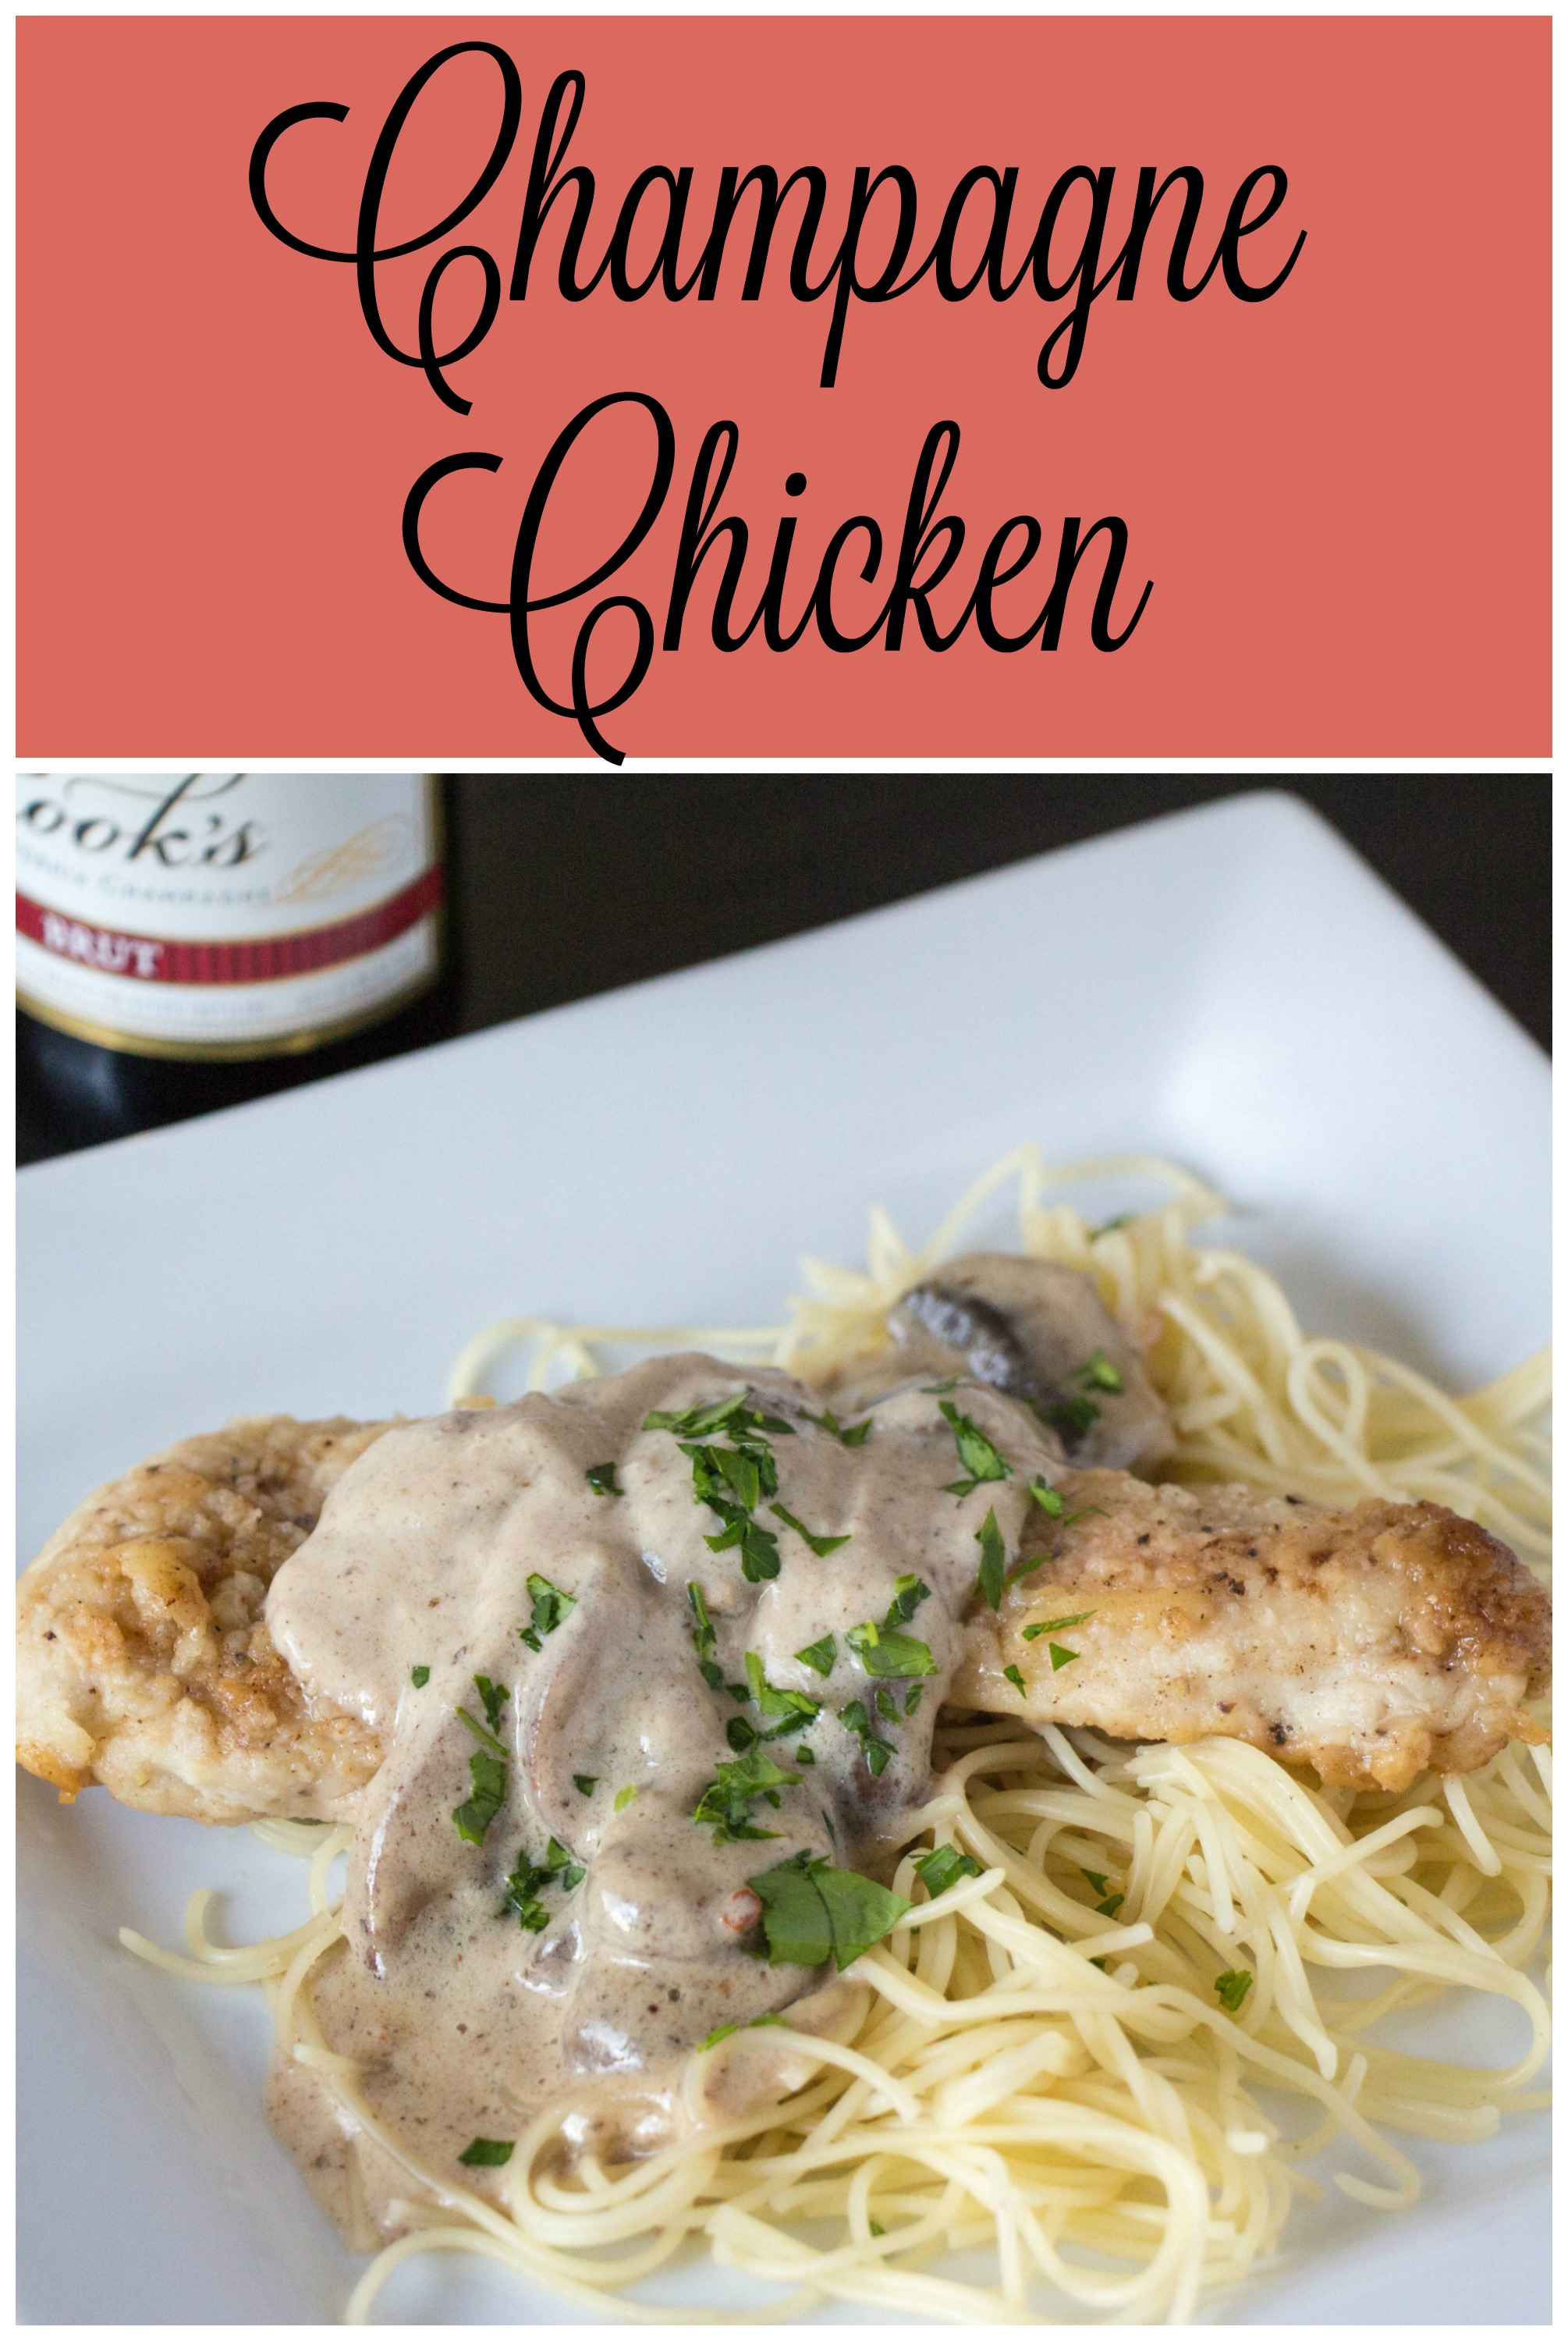 Champagne-Can Chicken